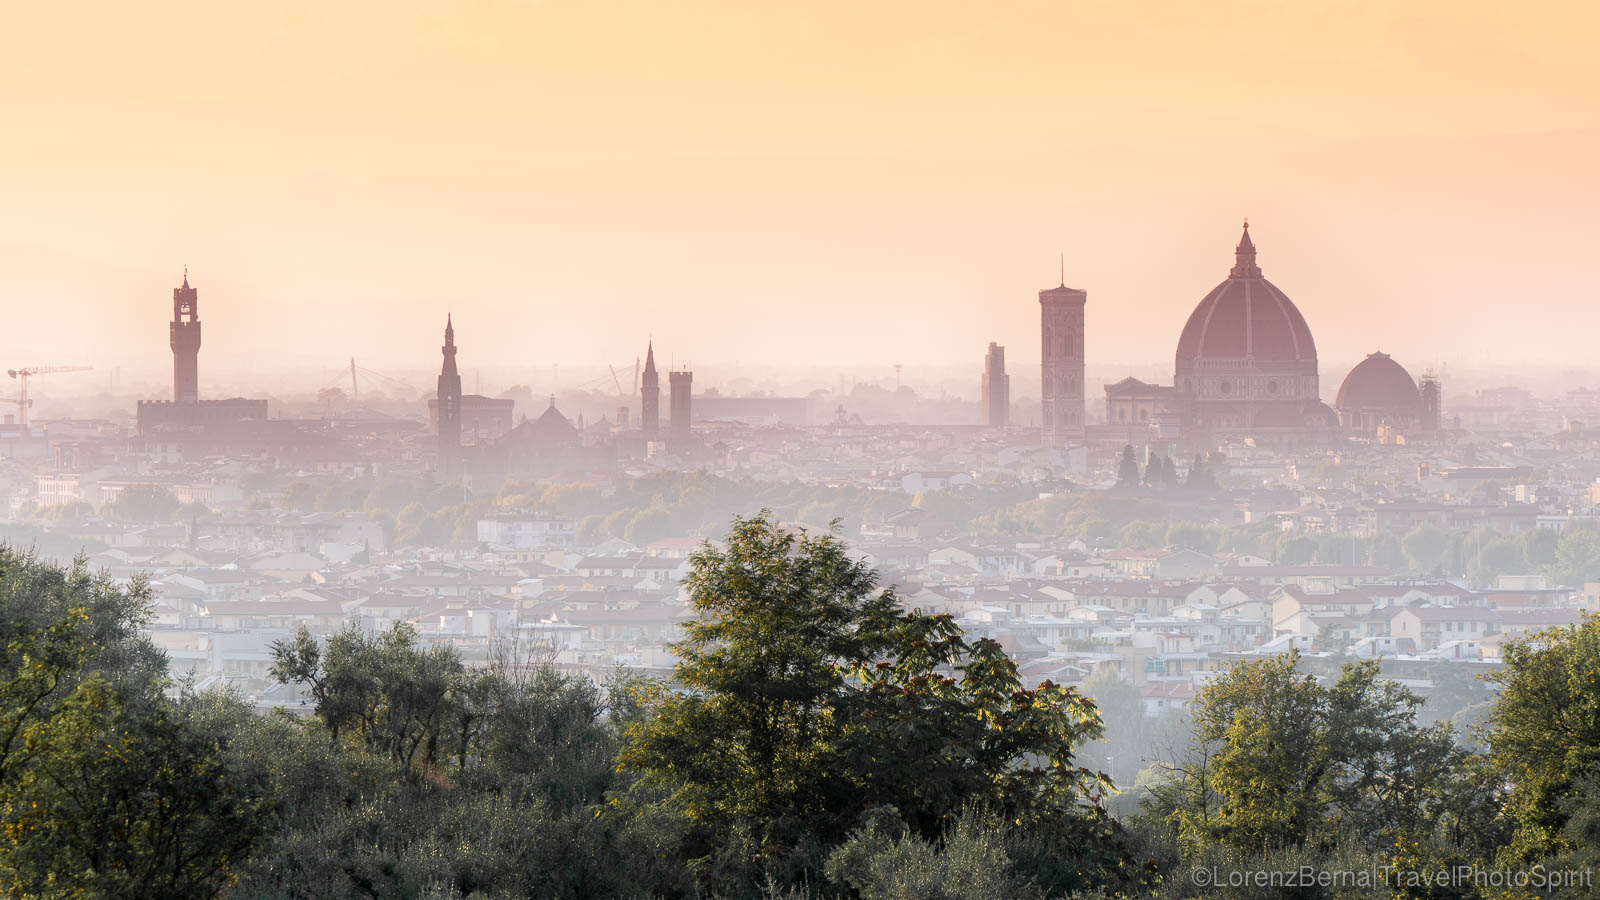 Florence skyline at sunset from one of the hills around the city - italy Travel Photography by Lorenz Berna.